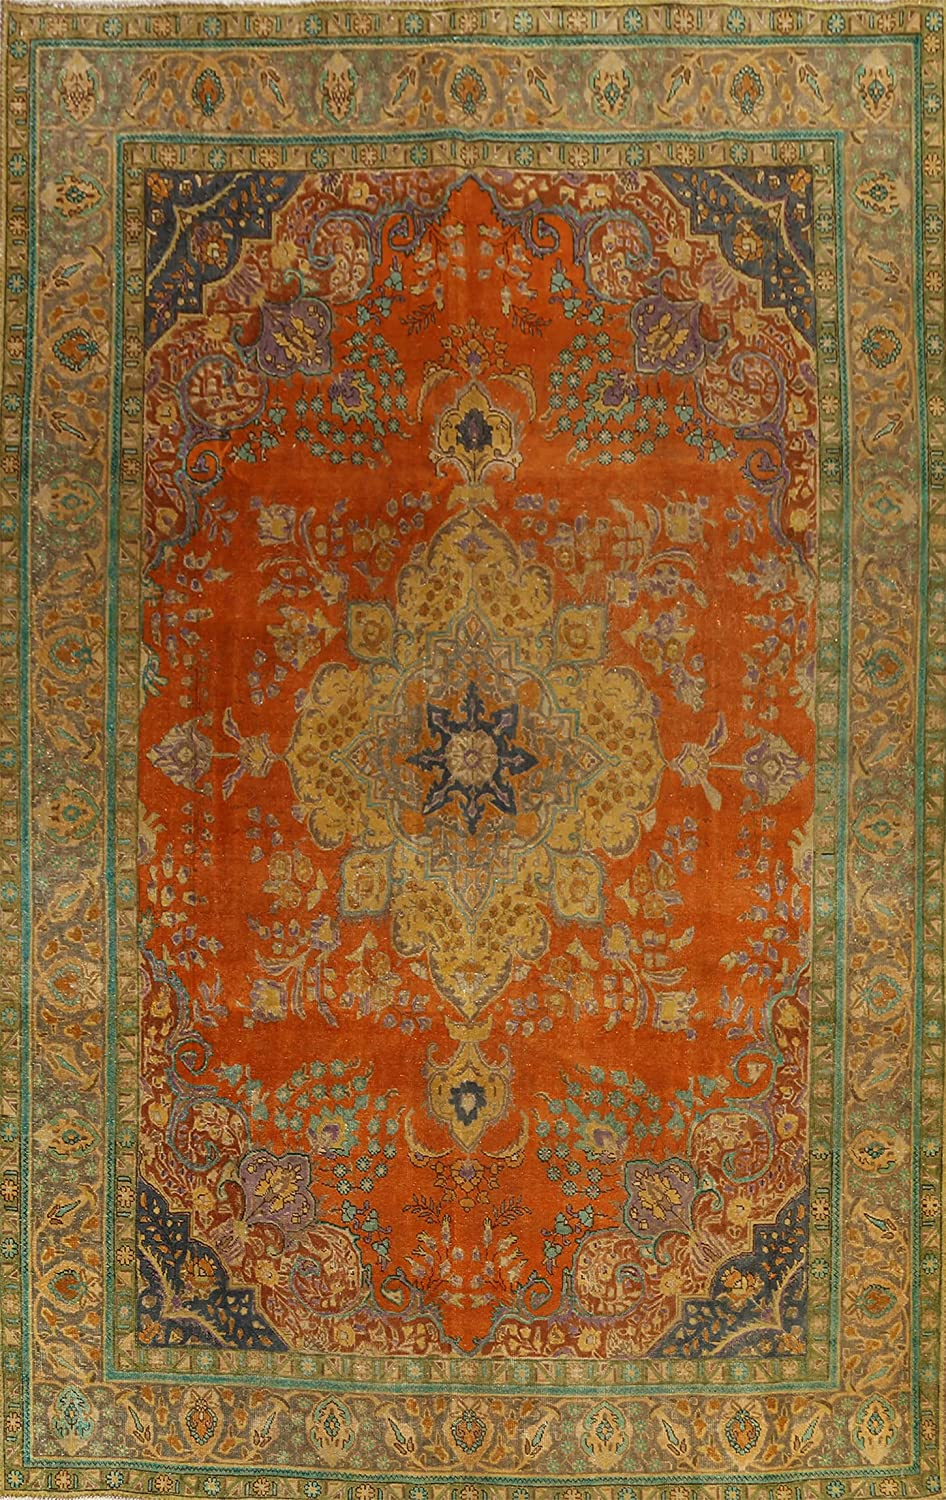 Vintage Floral Tebriz Oriental shopping Area Carpet Hand-Knotted Wool Rug Today's only